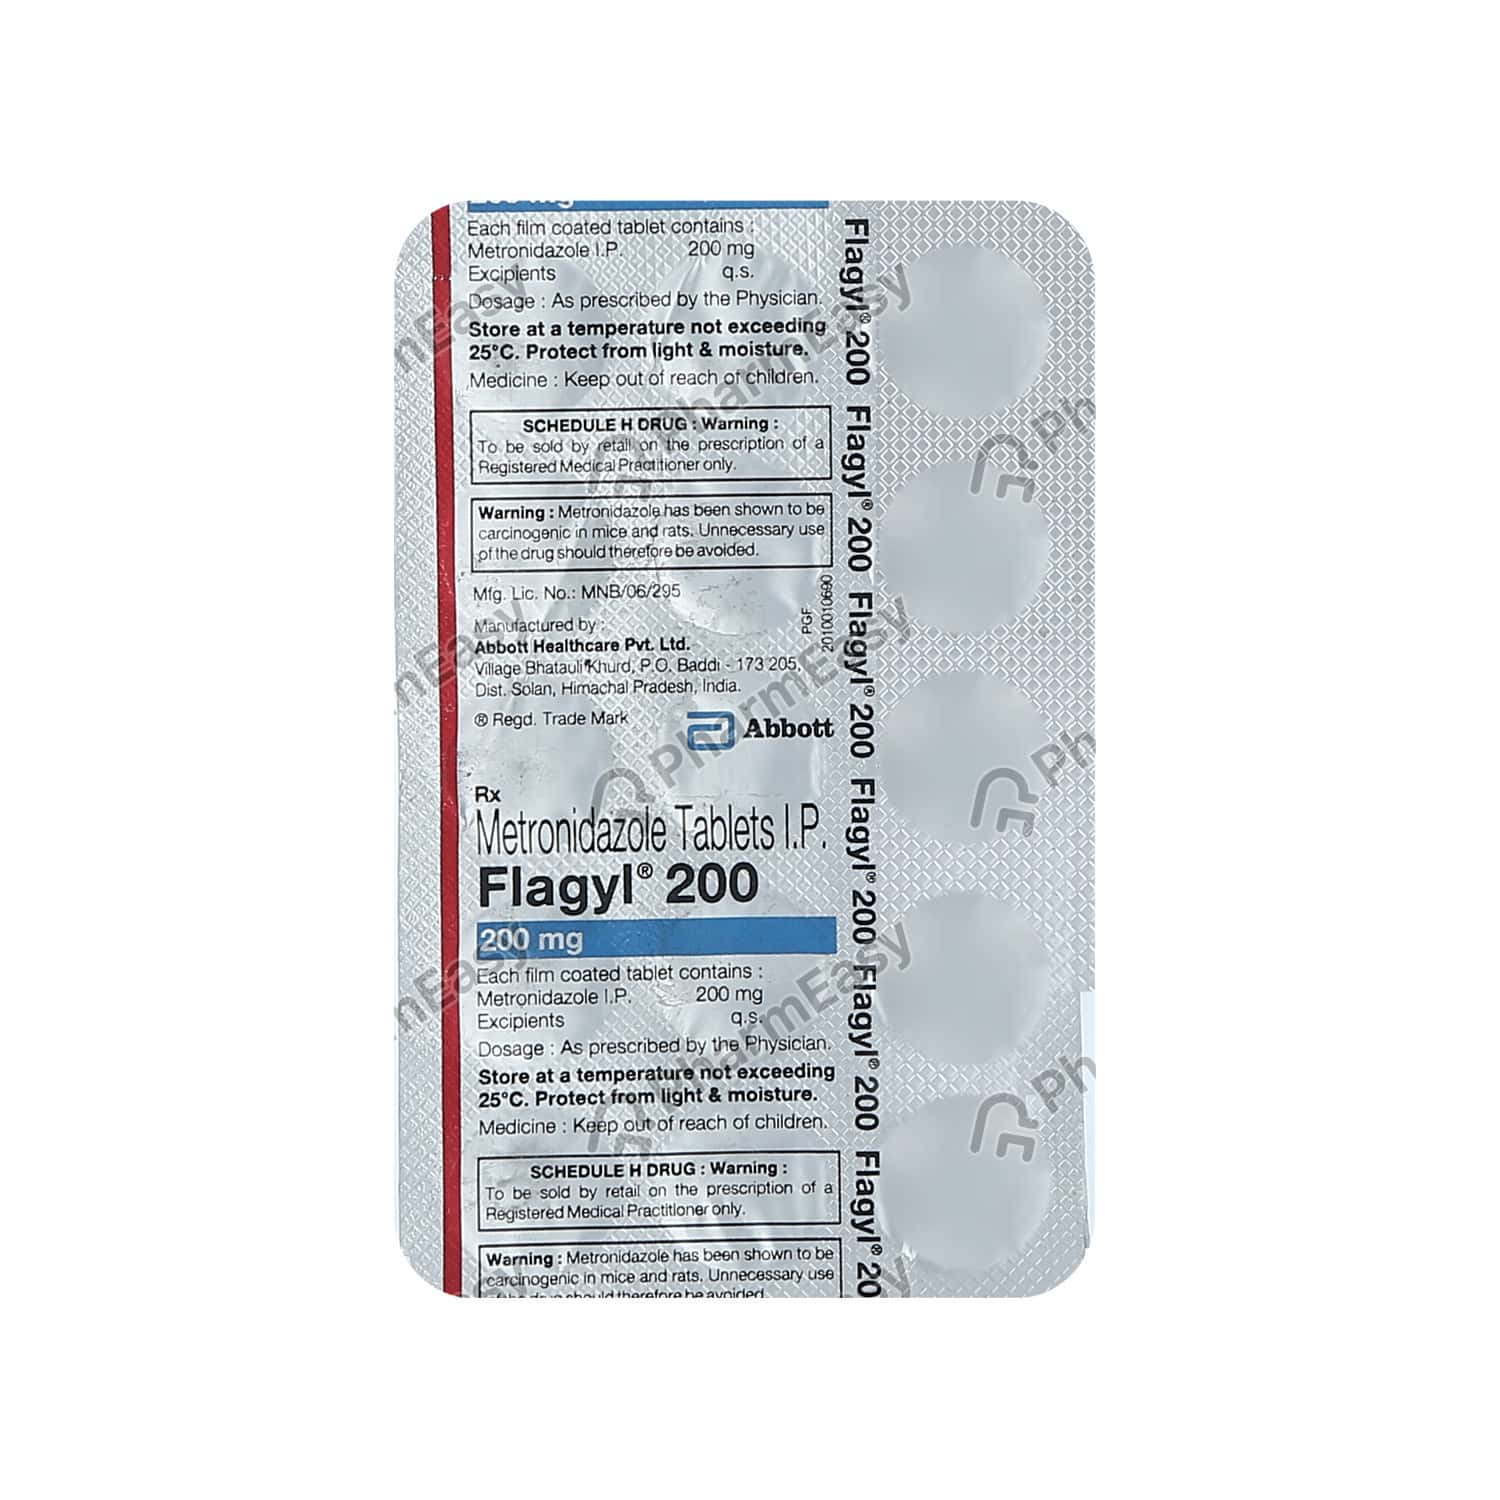 Flagyl 200mg Tablet